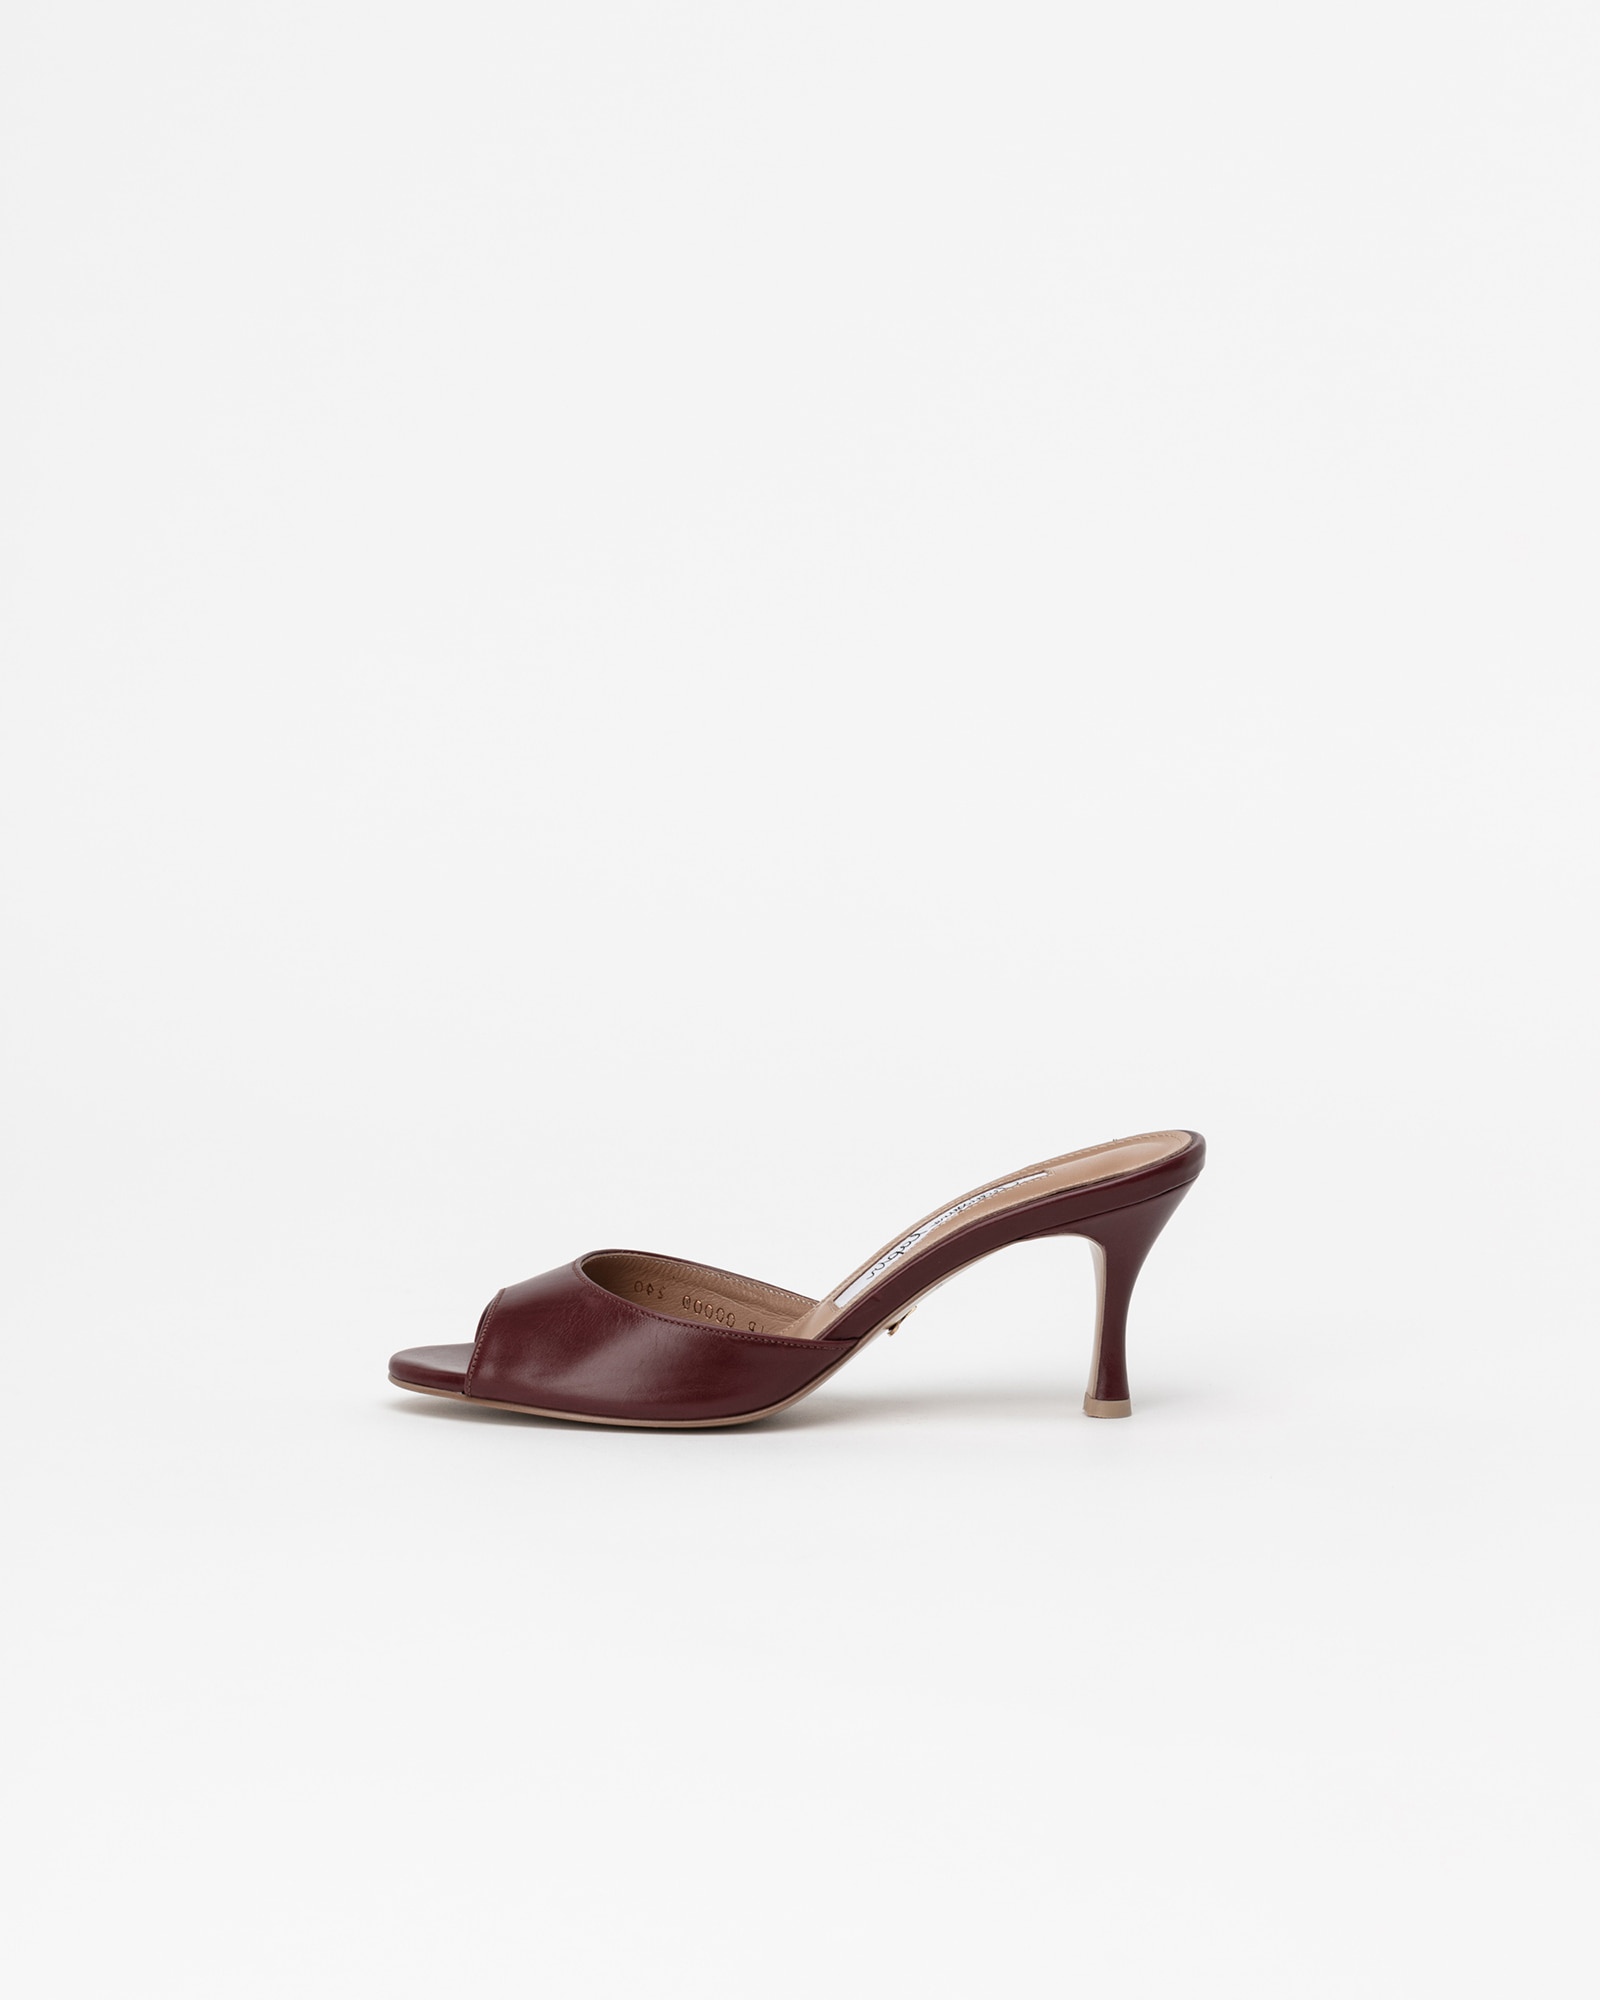 Chartres Mules in Burgundy Baby Calf